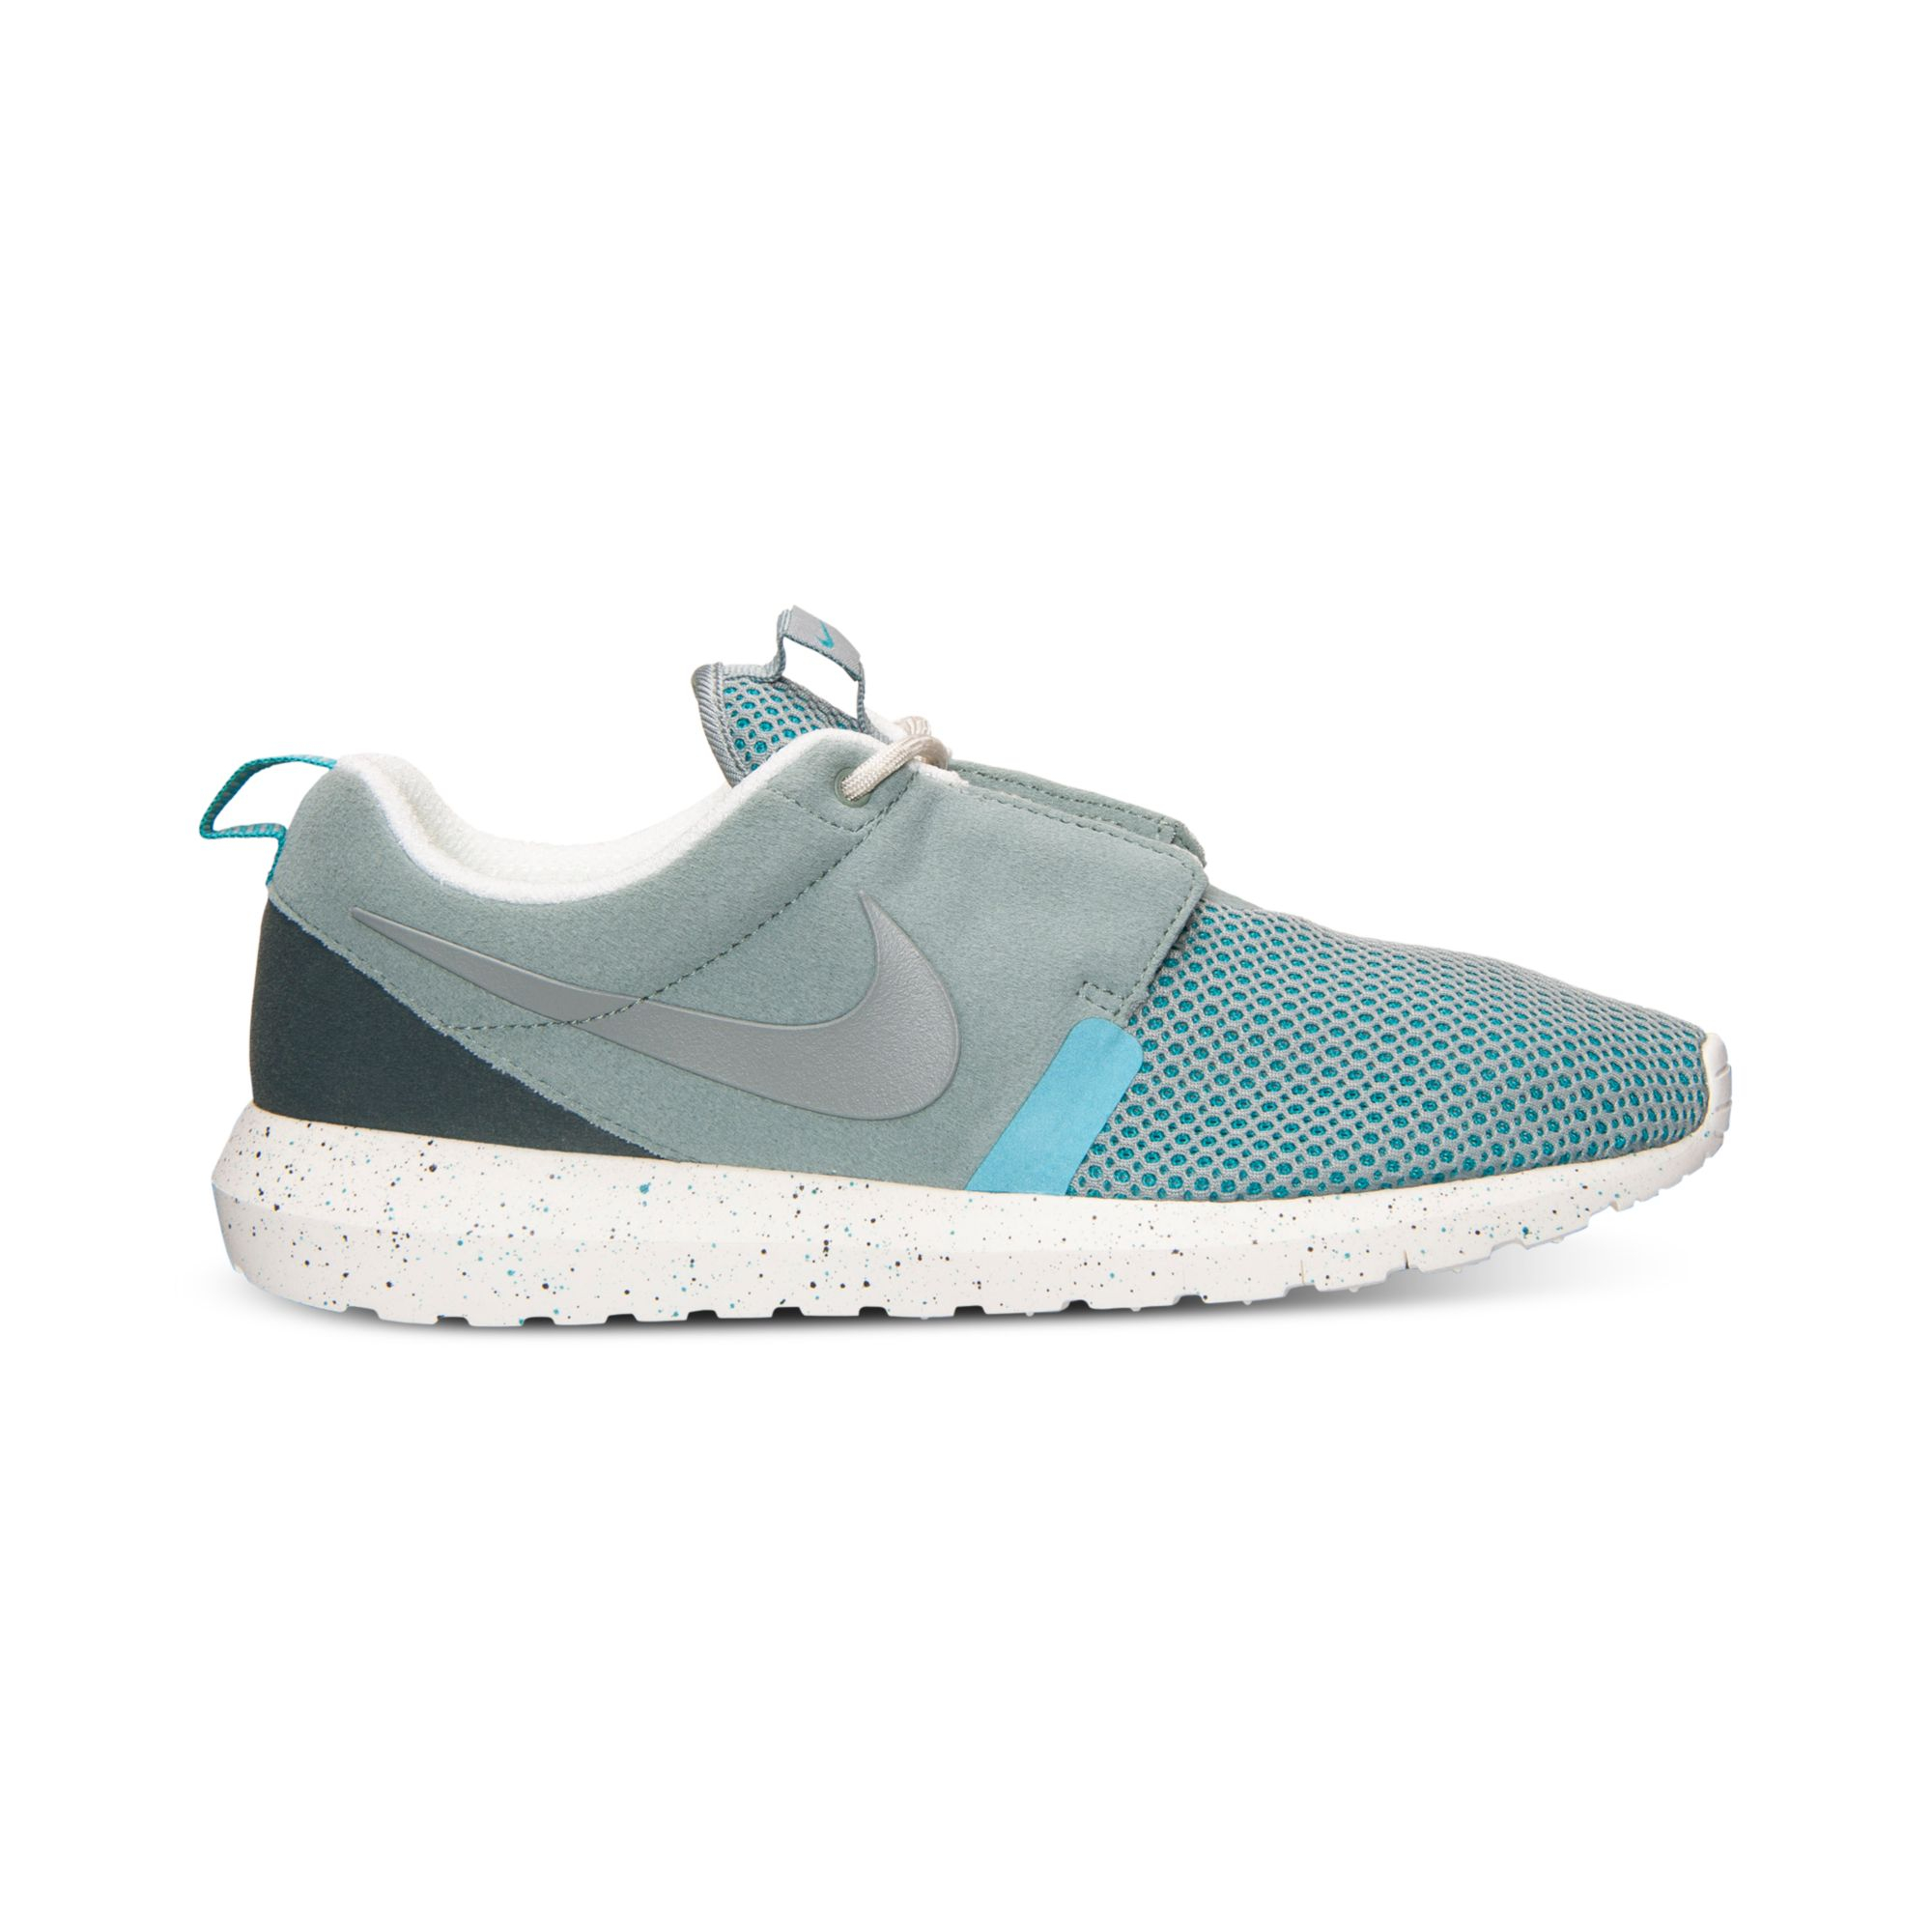 lyst nike mens roshe run nm breeze casual sneakers from. Black Bedroom Furniture Sets. Home Design Ideas